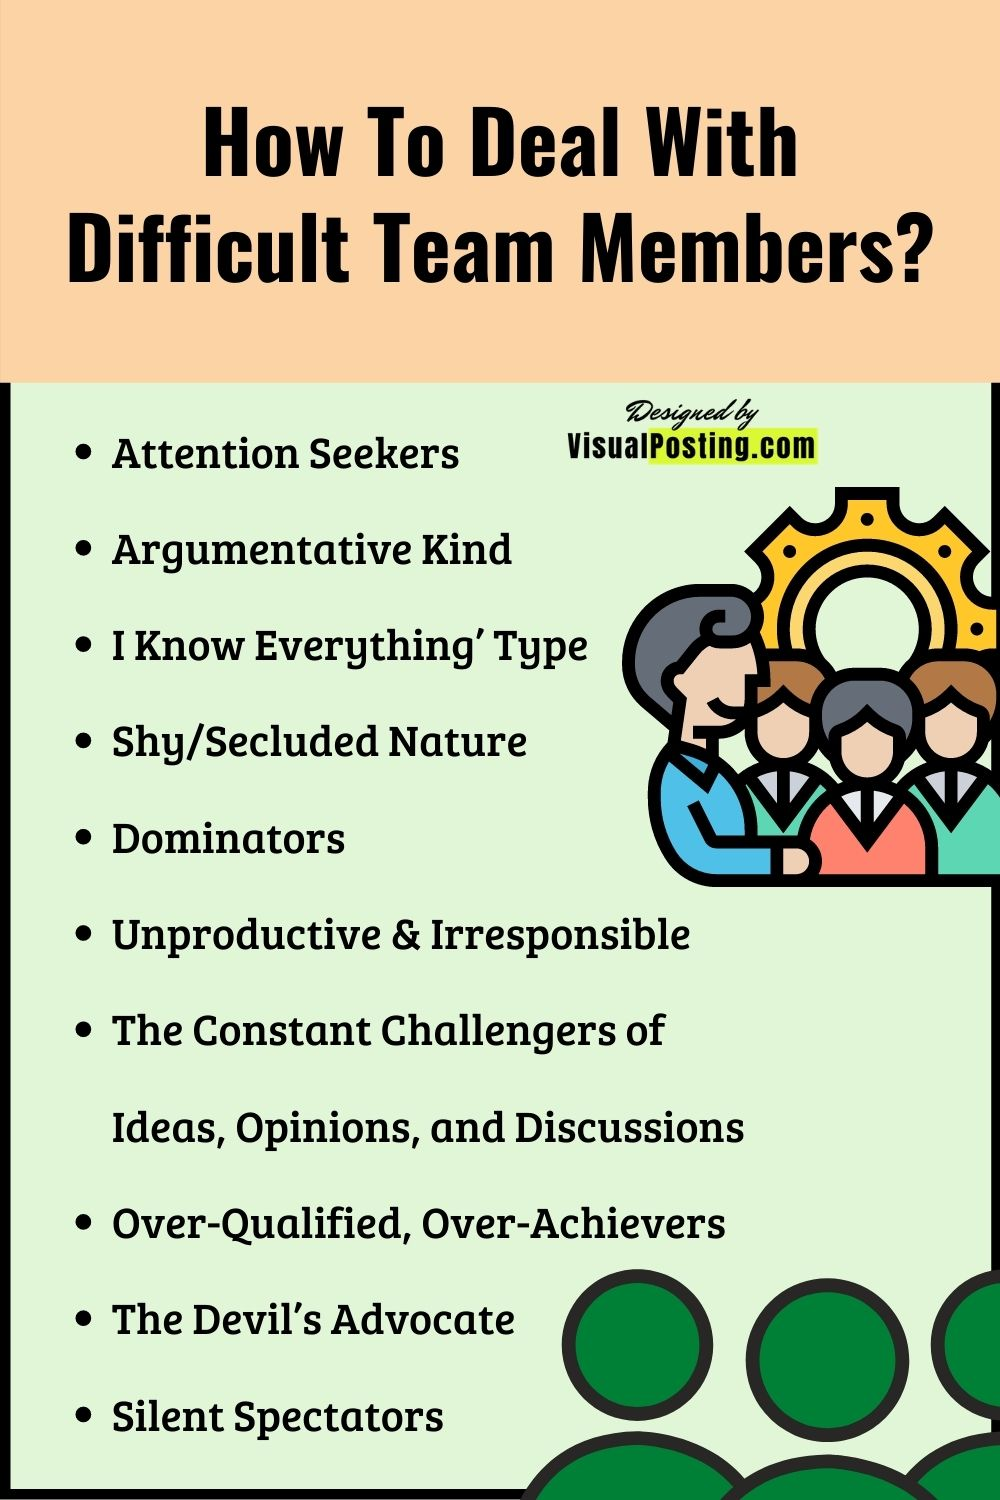 How To Deal With Difficult Team Members?.jpg